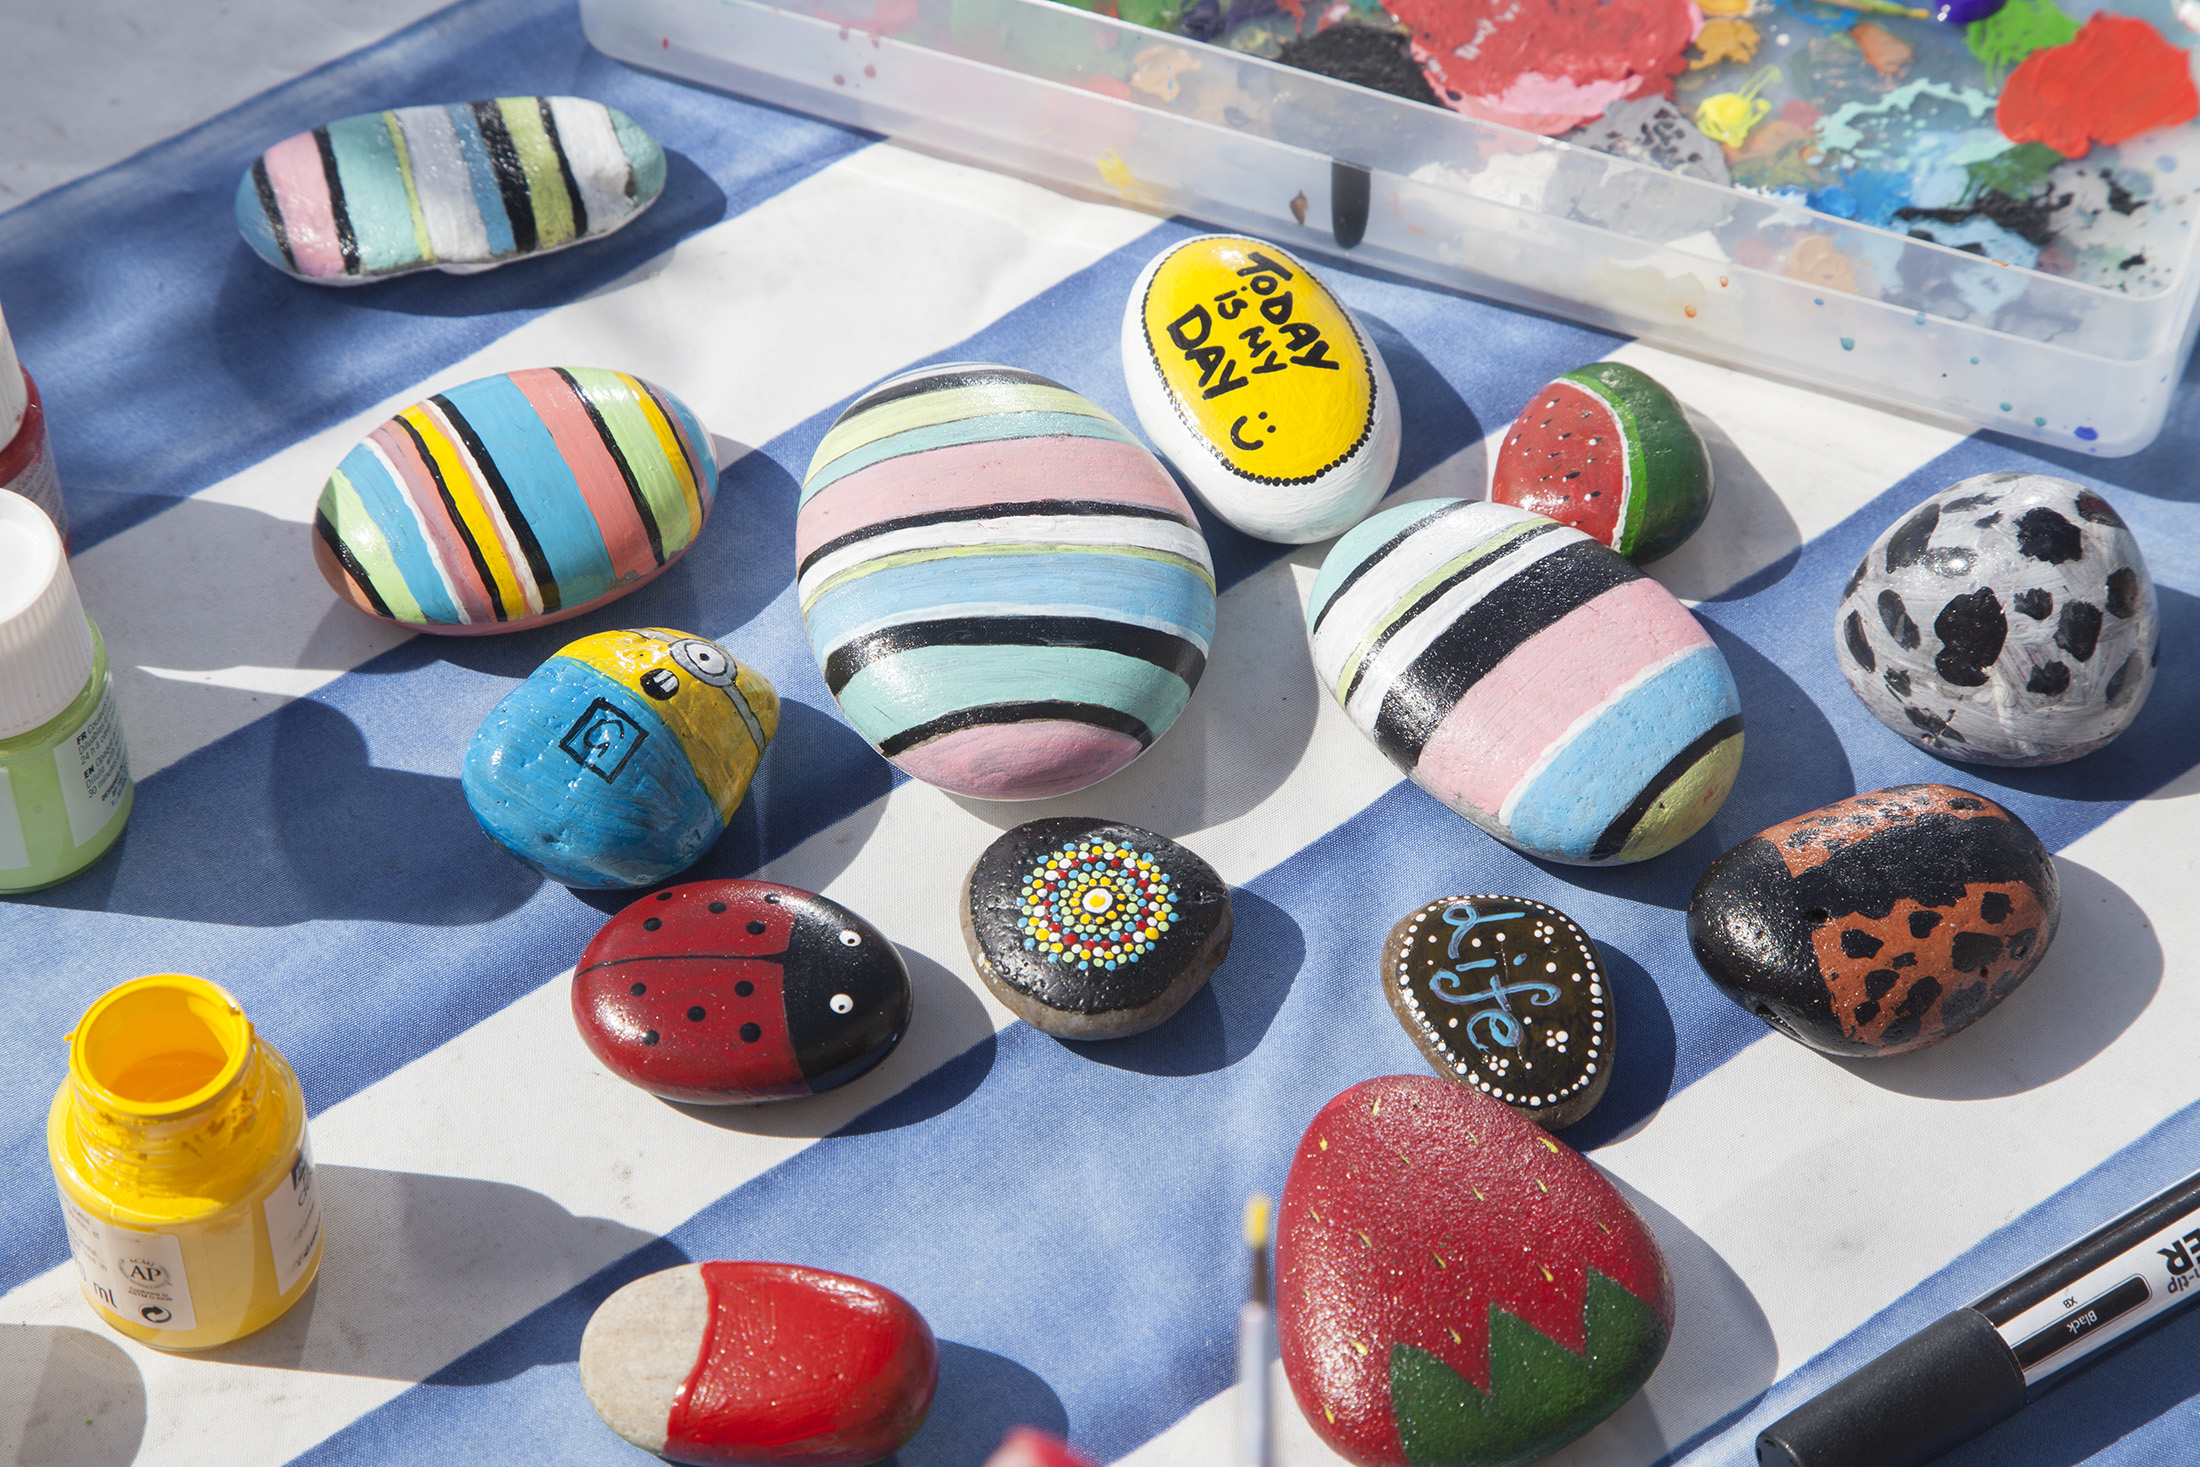 Rock painting is a popular pastime for people across Scotland.